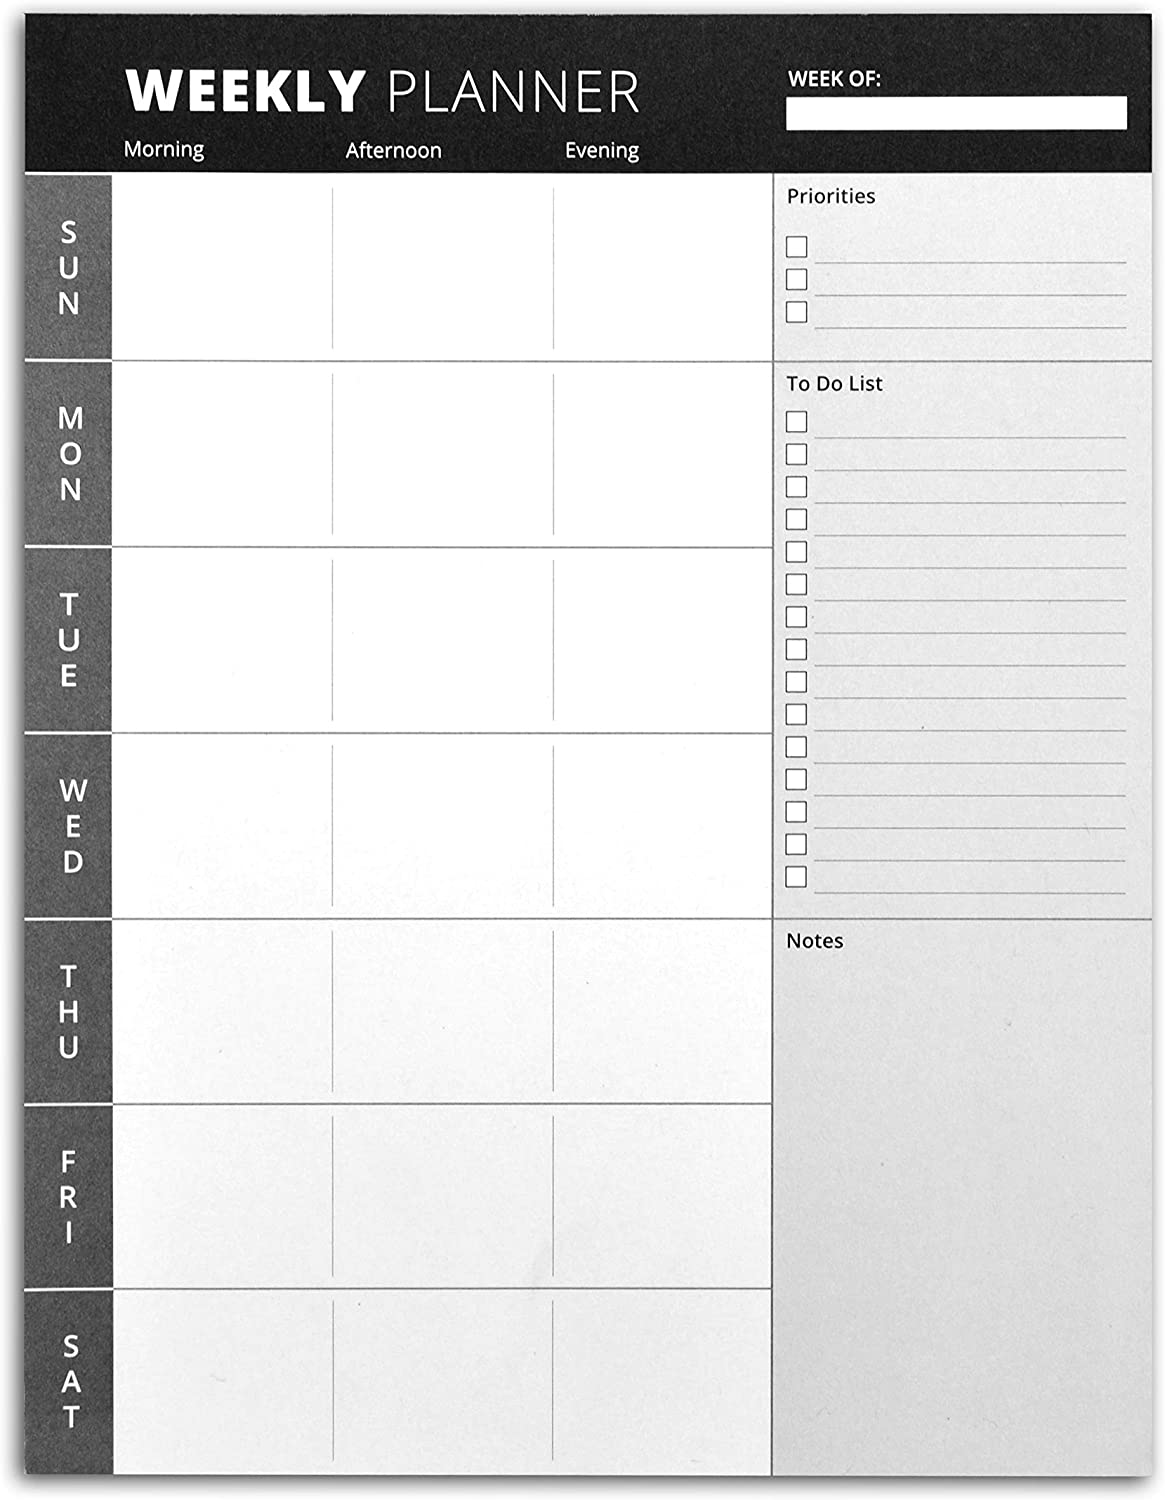 Home Advantage Weekly Planner Pad with Tear Off Sheets and Magnetic Strip (Black, 8.5 inch x 11 inch)